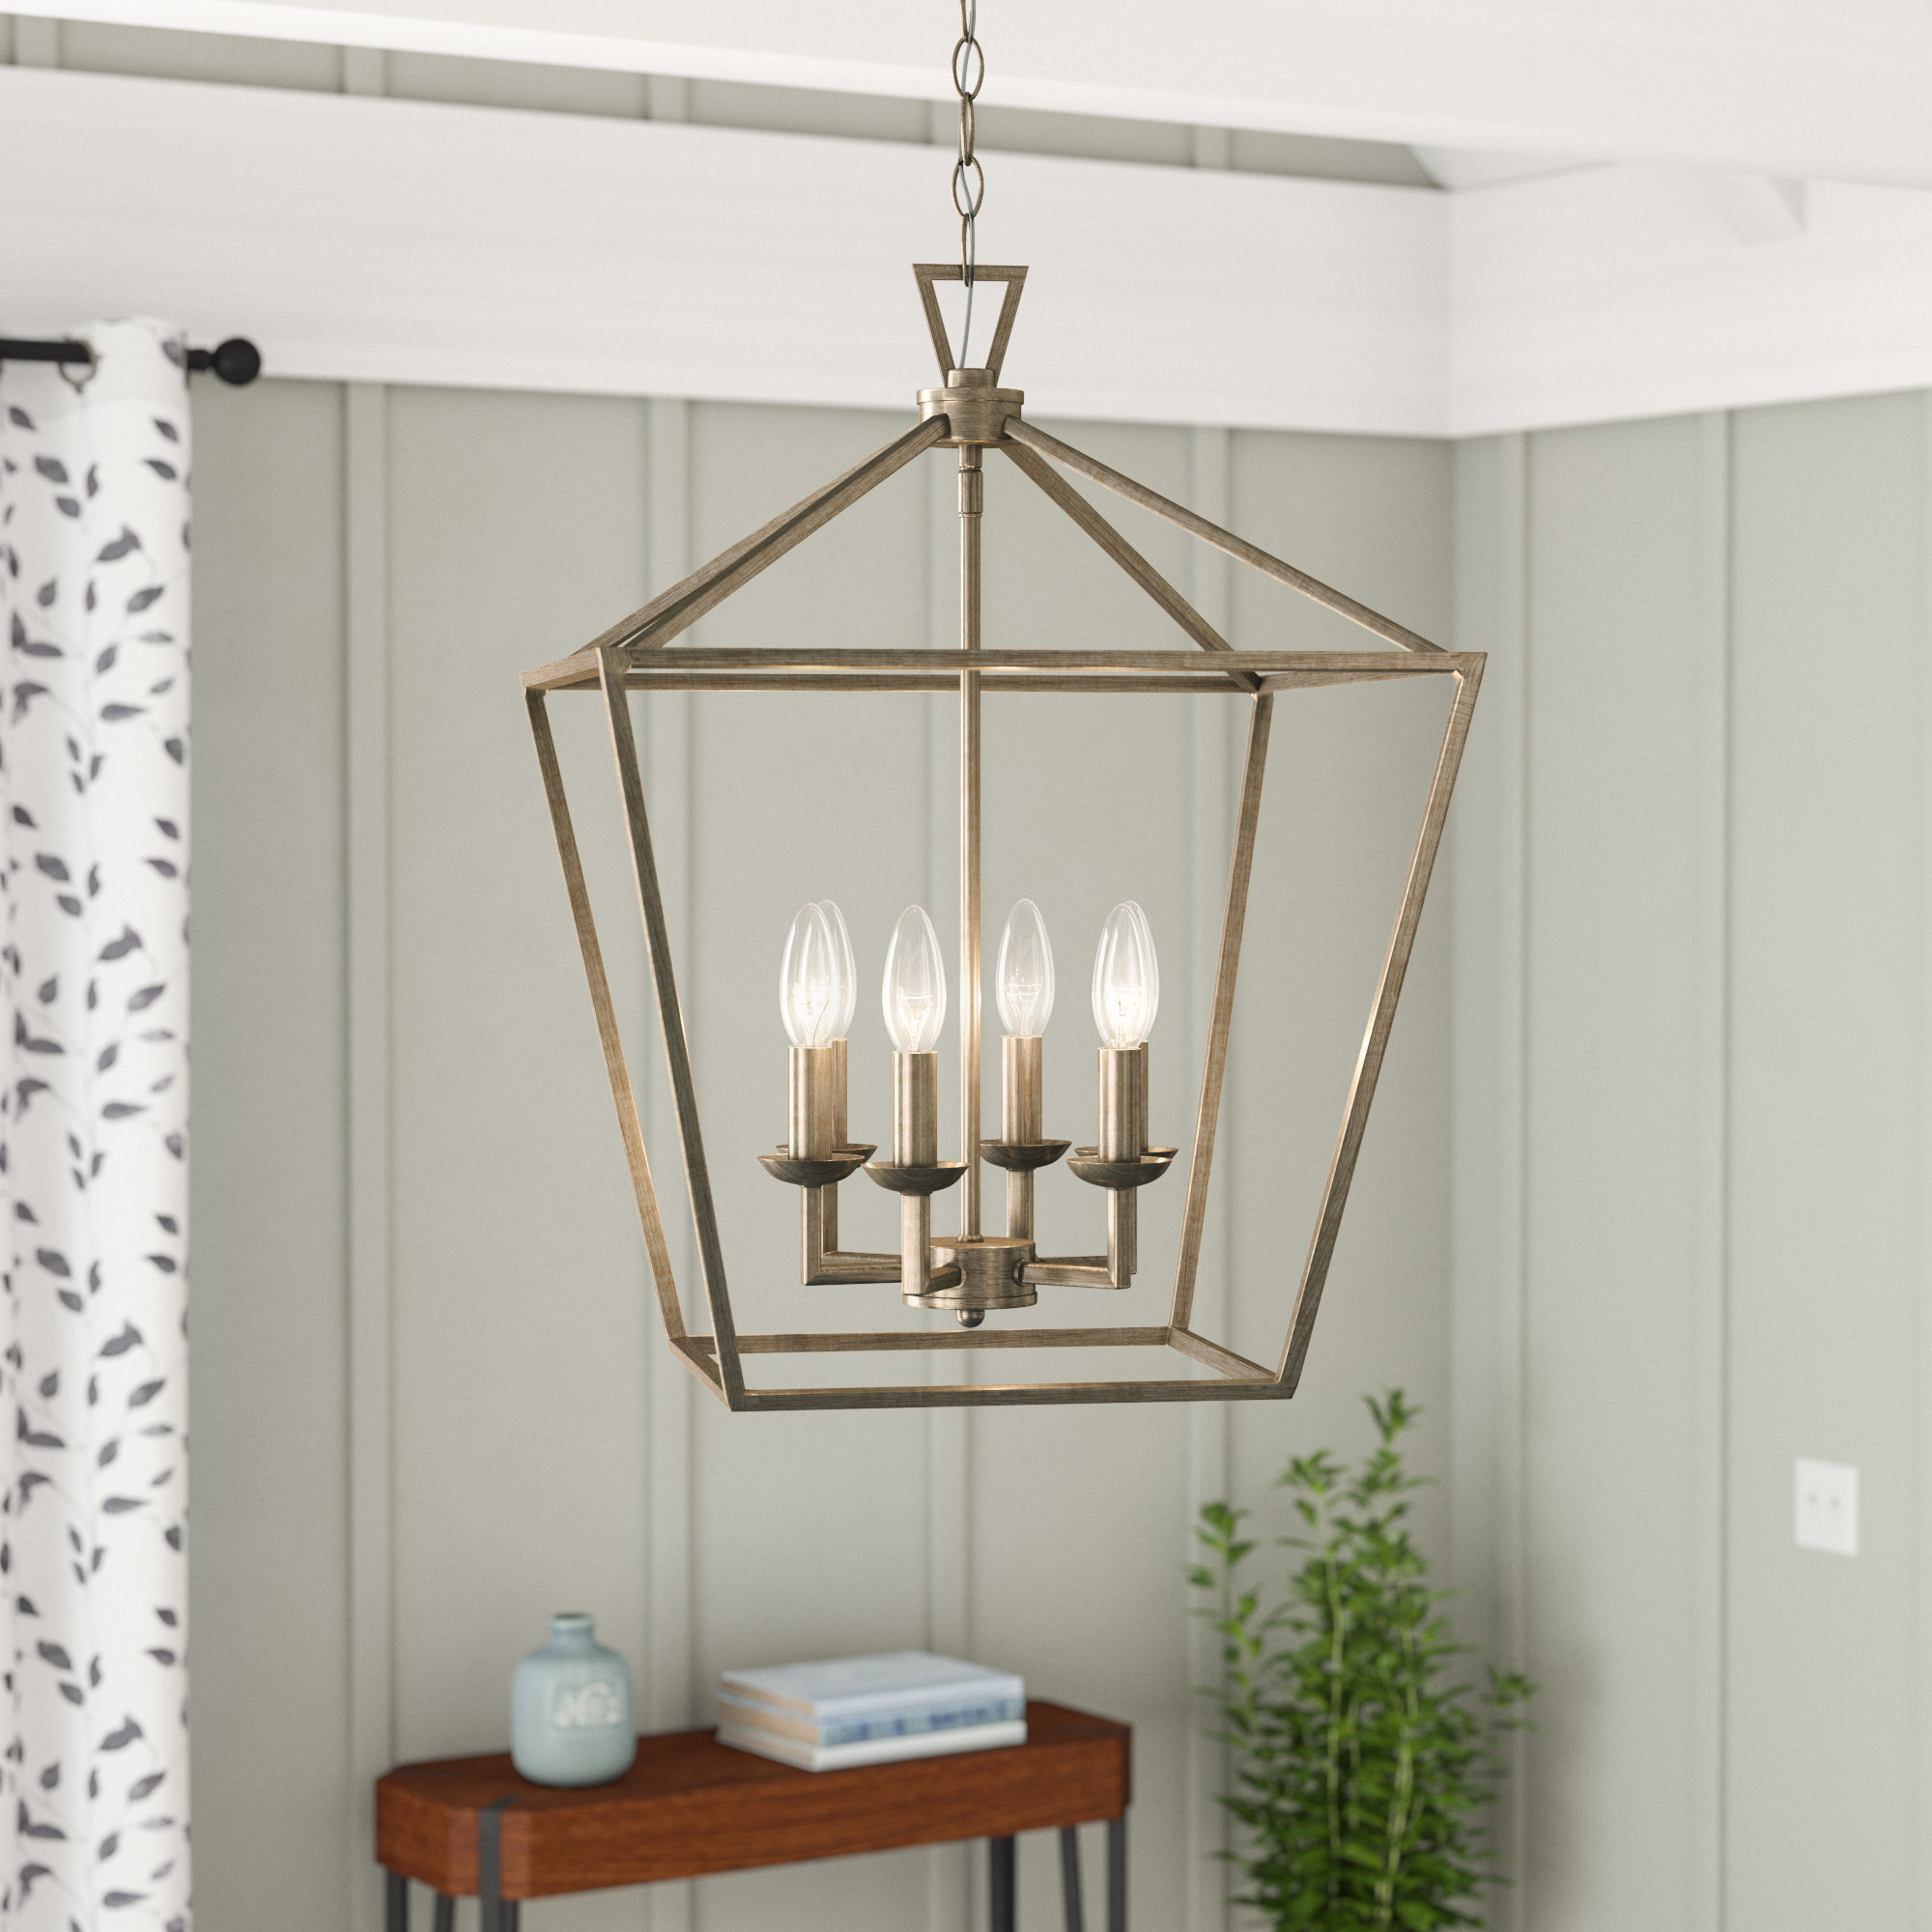 laurel foundry modern farmhouse carmen light foyer pendant metal accent table reviews single barn door classic furniture reproductions large floor mirror pier one vanity target